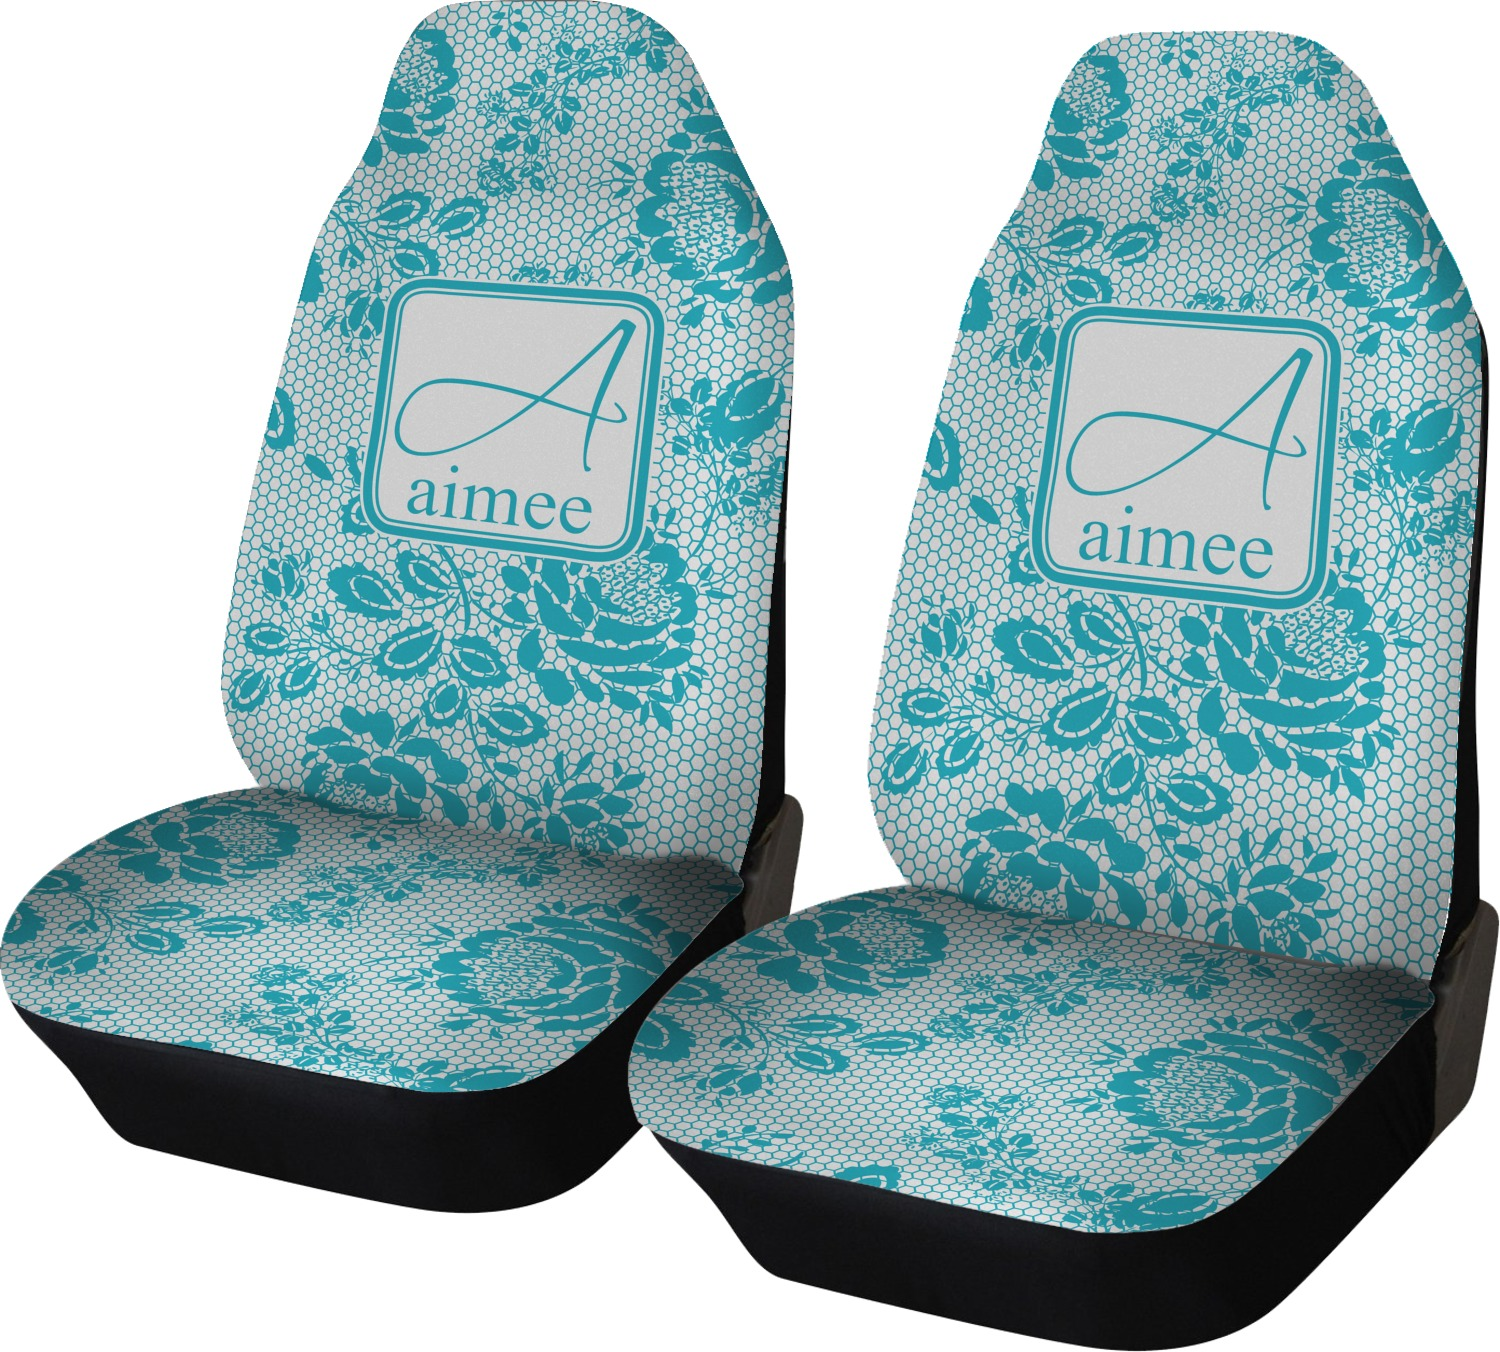 Lace Car Seat Covers Set Of Two Personalized